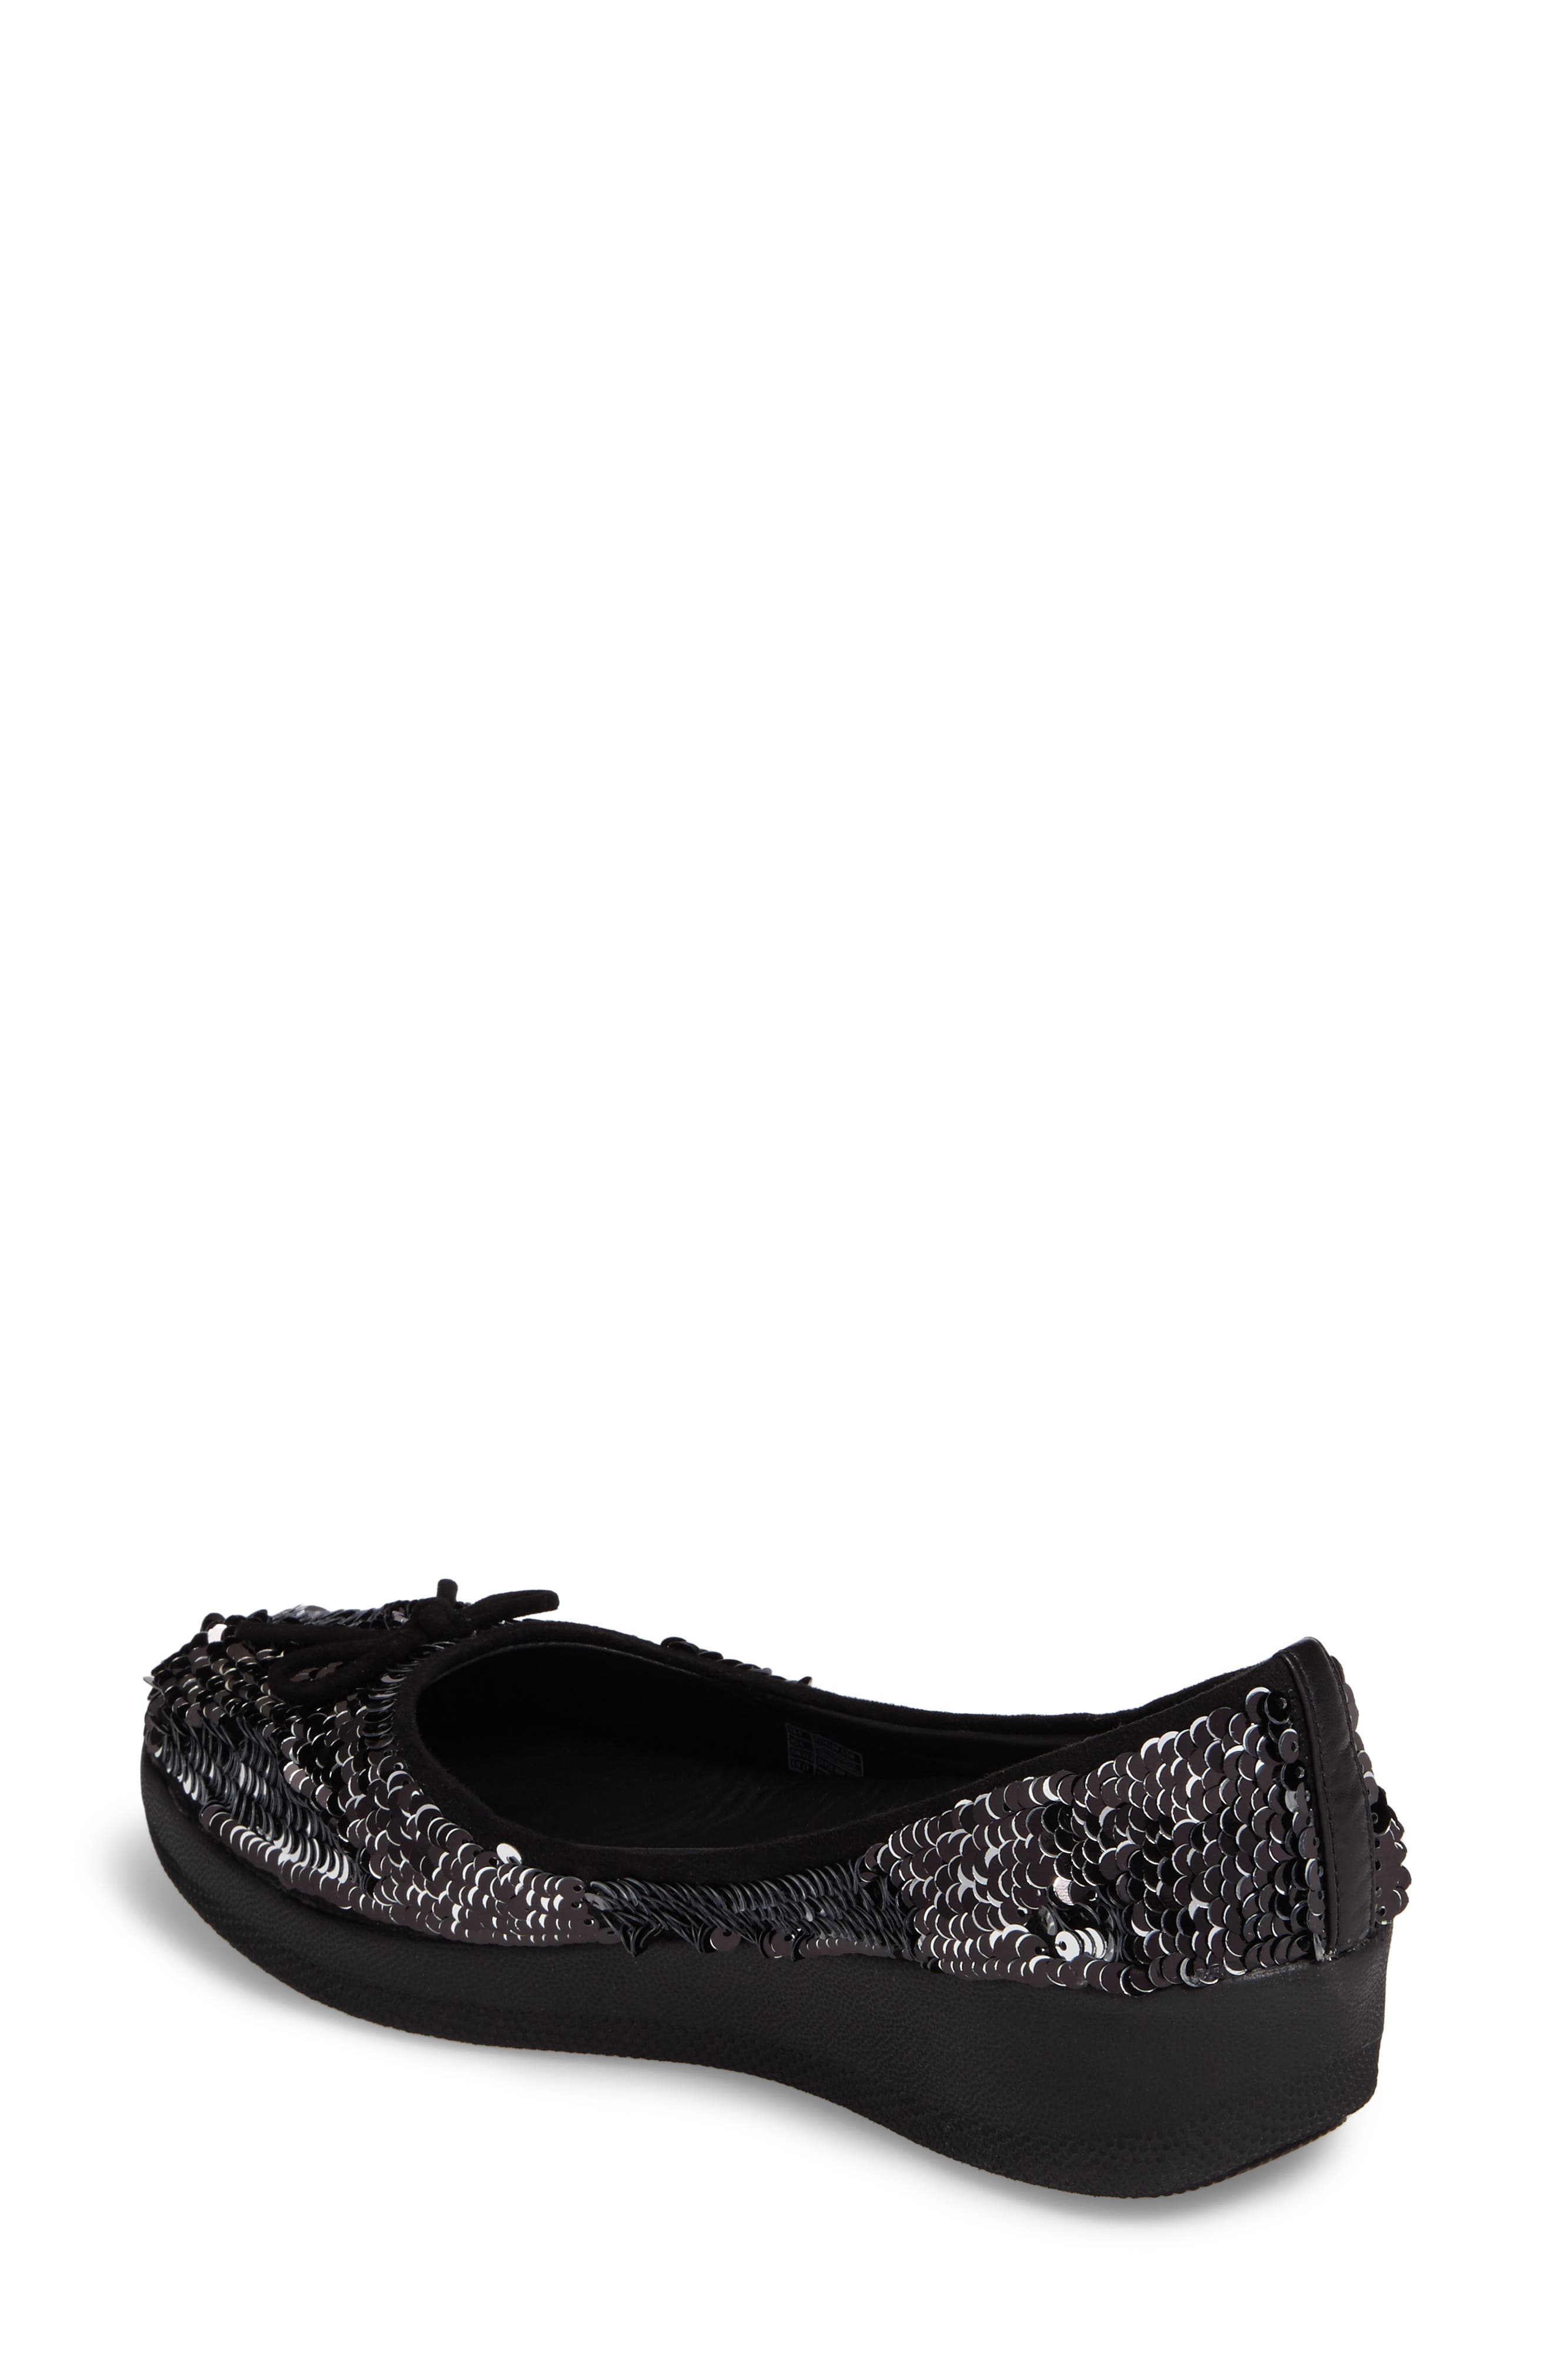 Superballerina Sequin Ballet Flat,                             Alternate thumbnail 2, color,                             Black Fabric